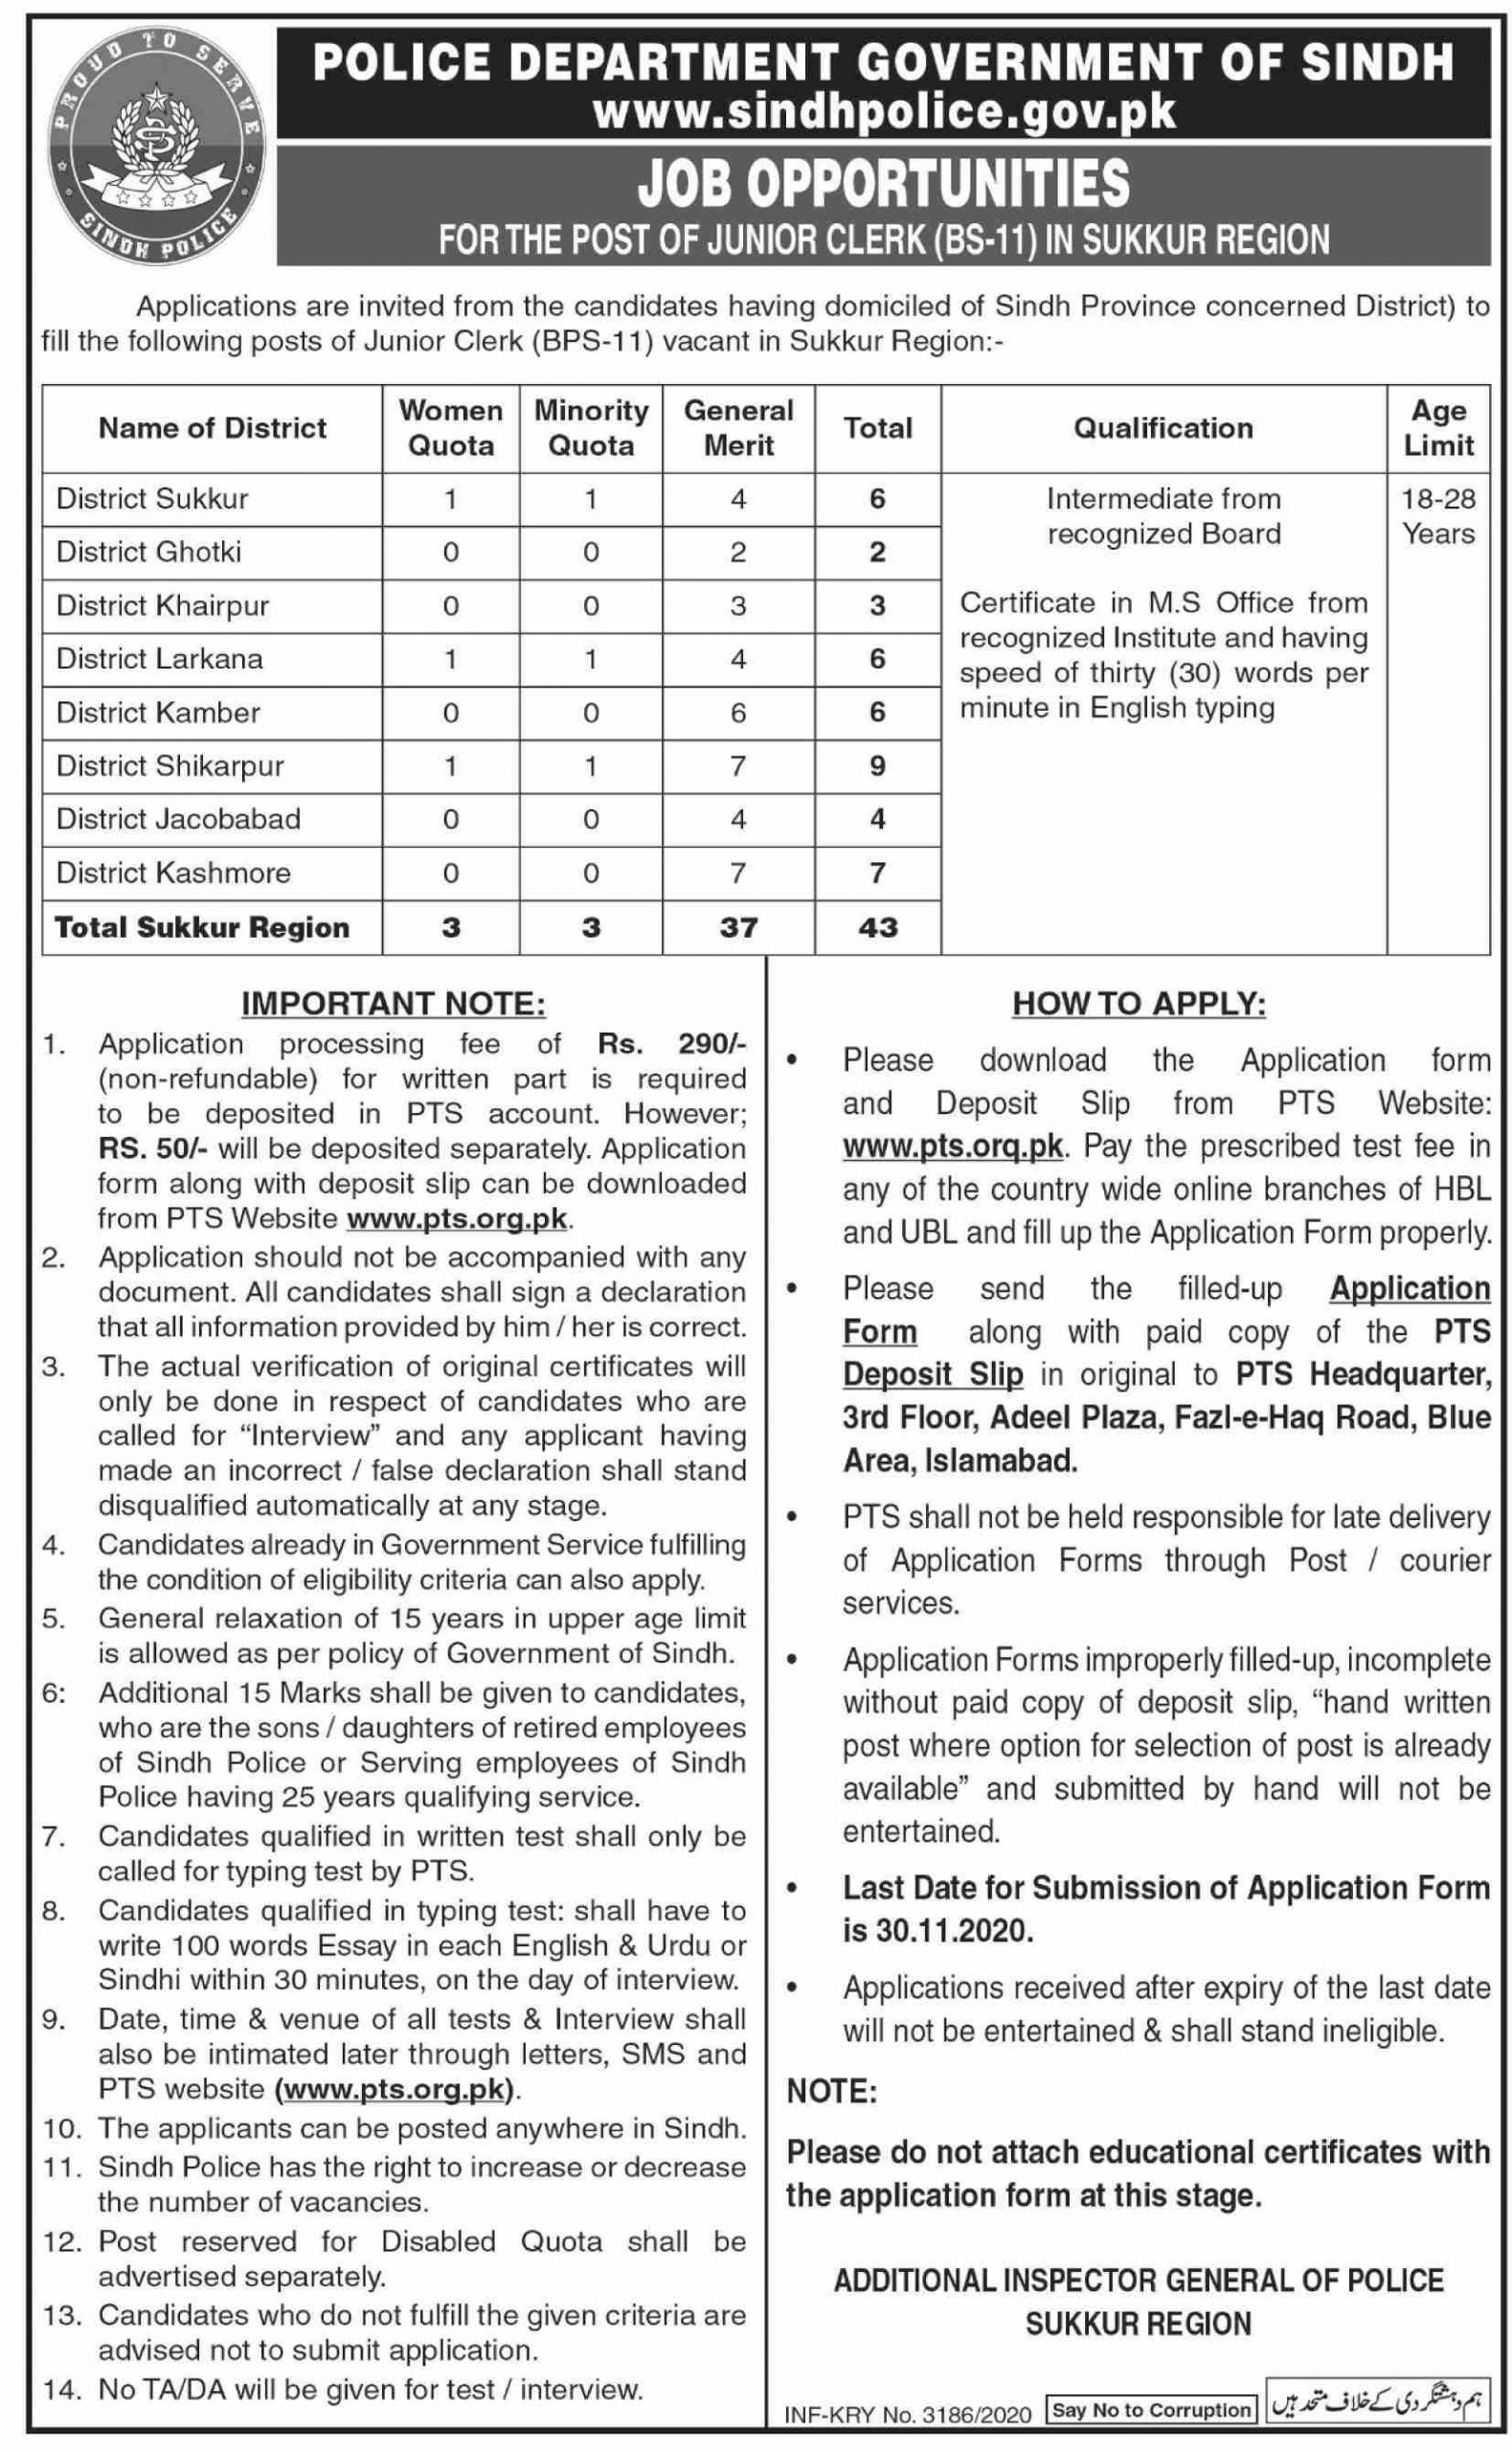 Jobs in Government of Sindh Police Department 16 November, 2020